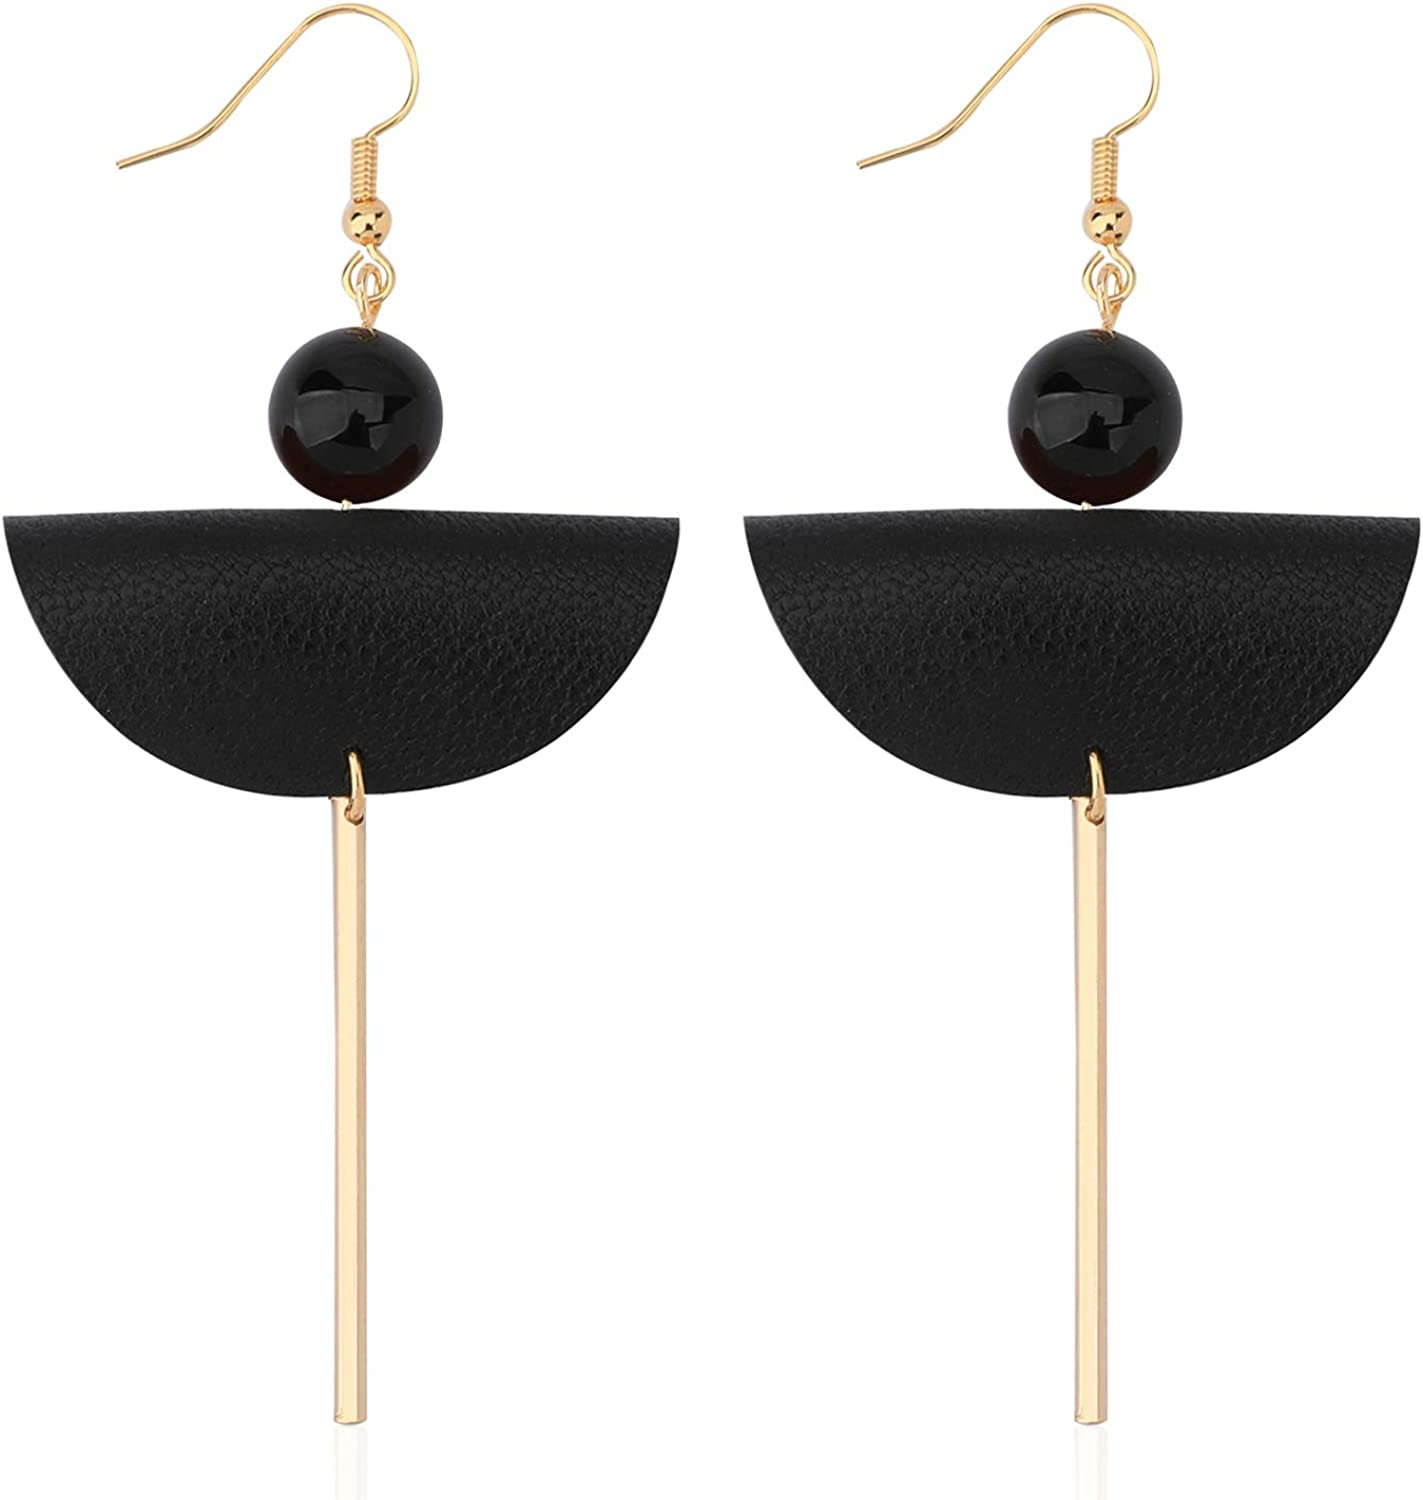 BrownBlack and Grey Agate Drop Earrings on Gold Plated Hooks